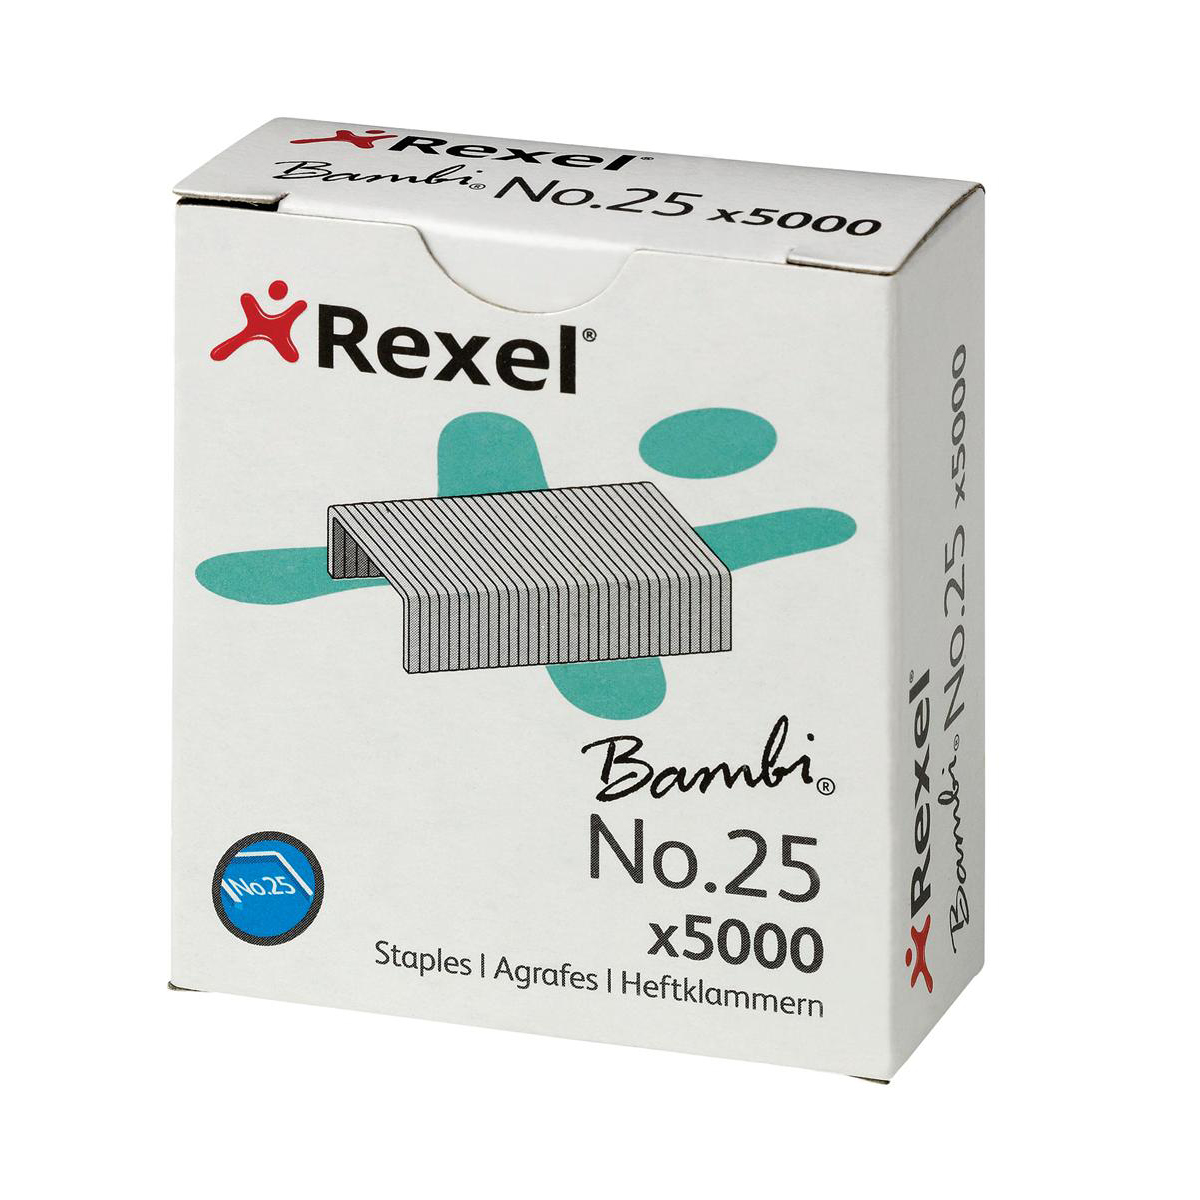 Rexel No. 25 Staples 4mm Ref 05025 [Pack 5000]